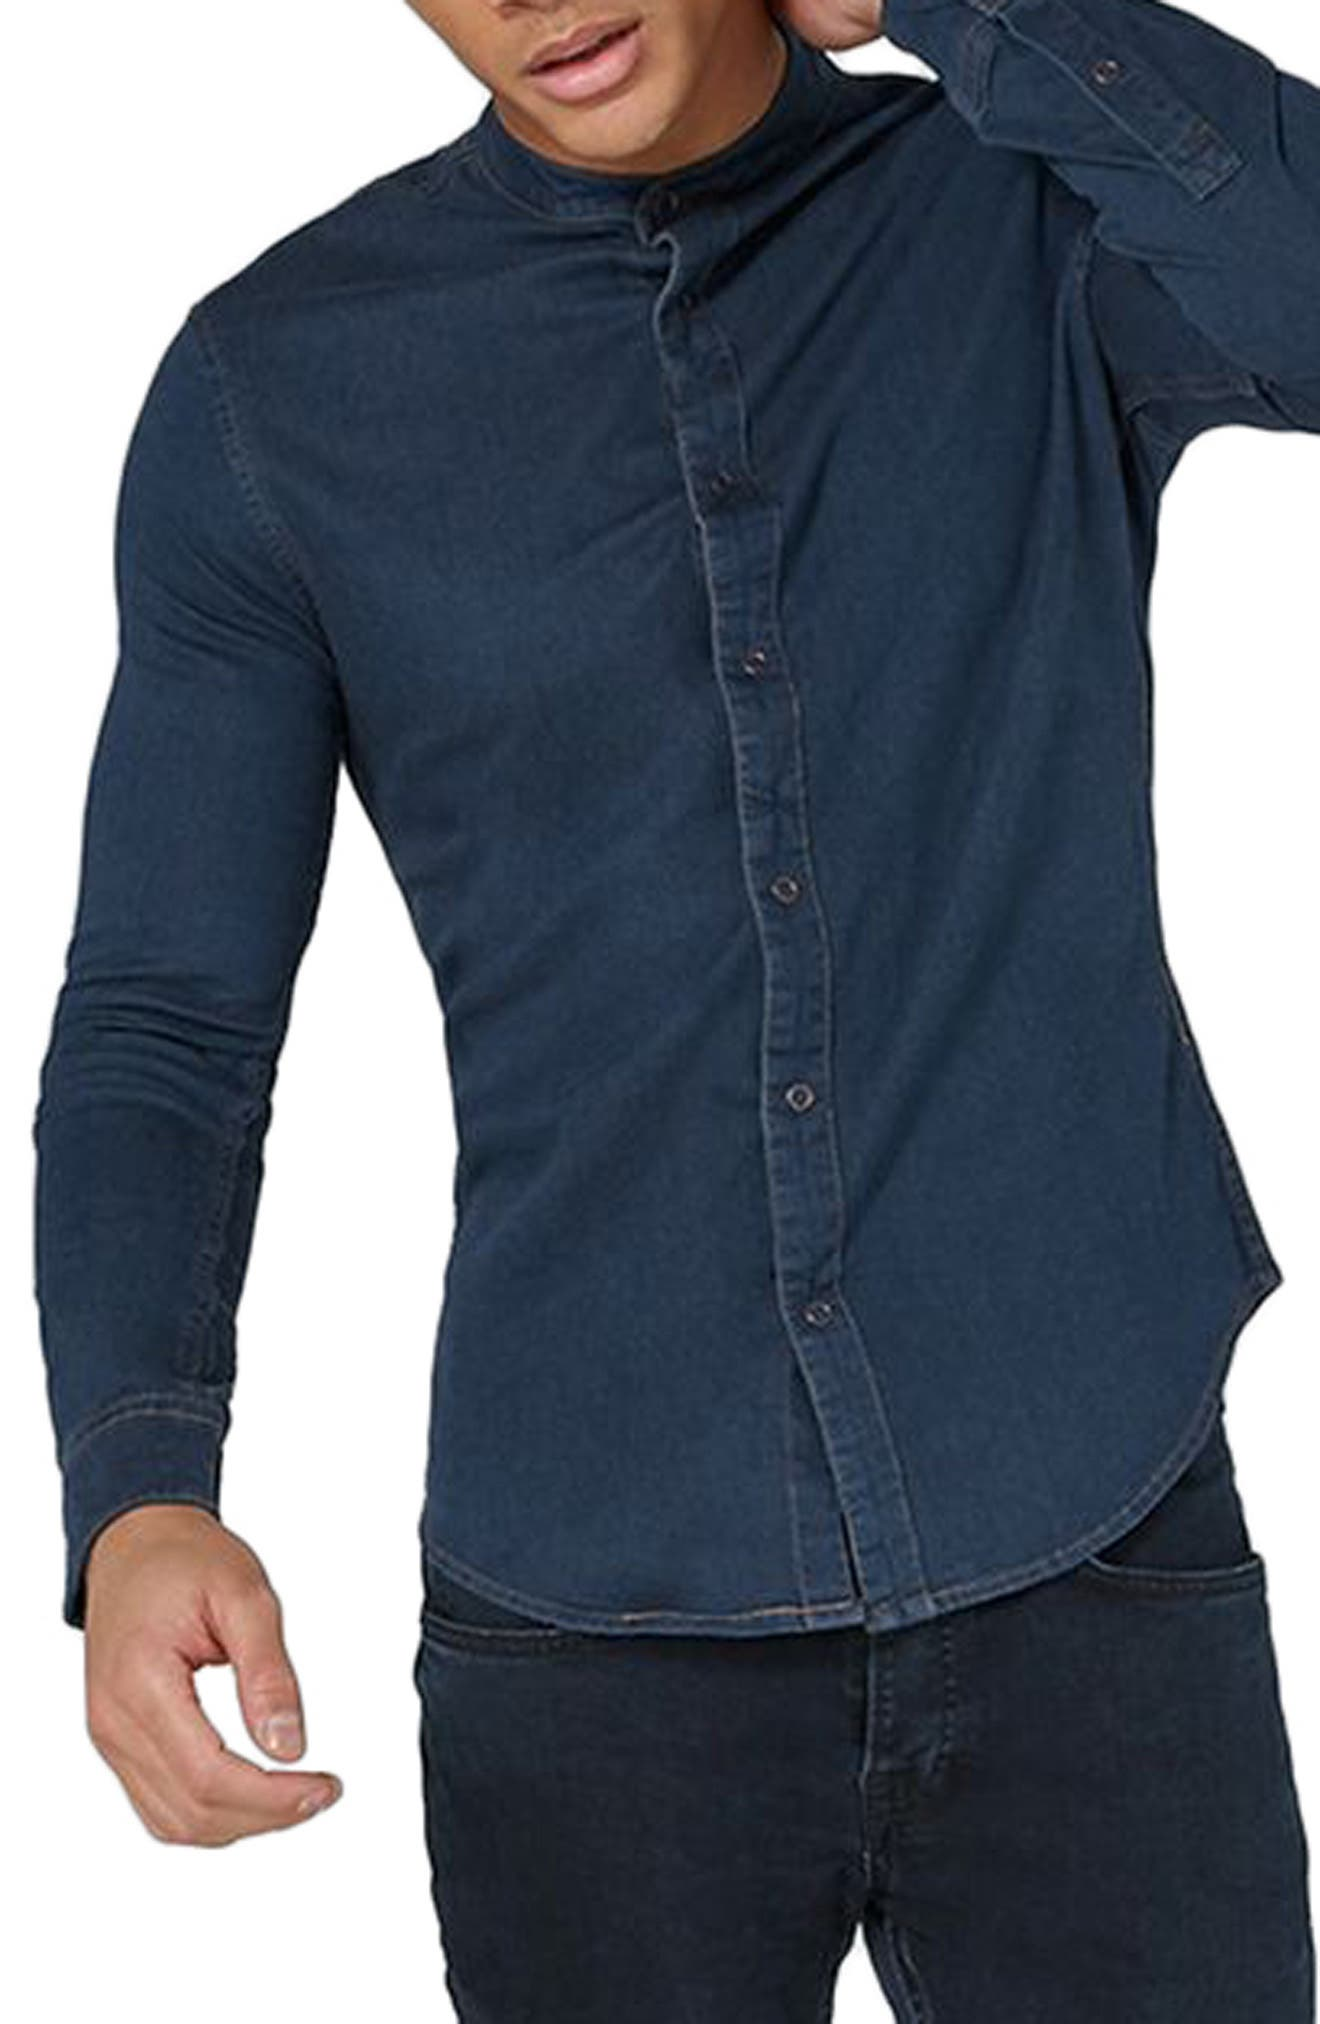 Topman Band Collar Denim Shirt